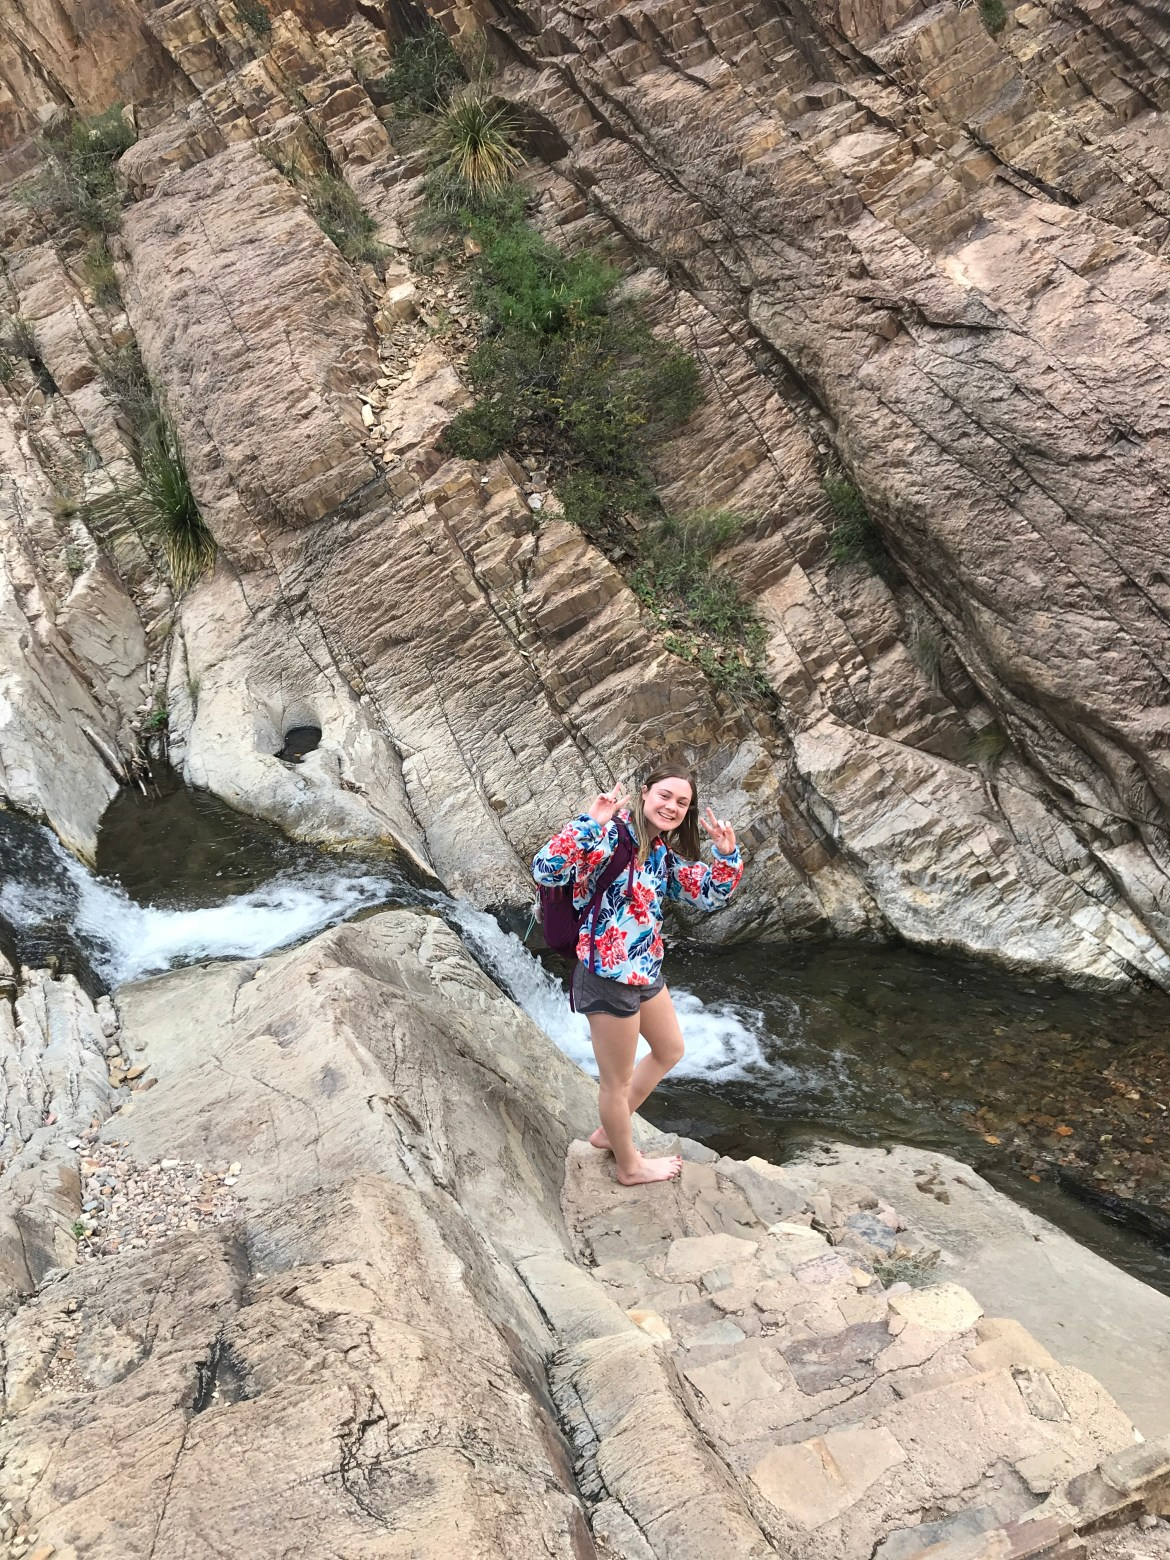 White girl wearing sweaters and shorts with no shoes posing in front of a river flowing over a trail